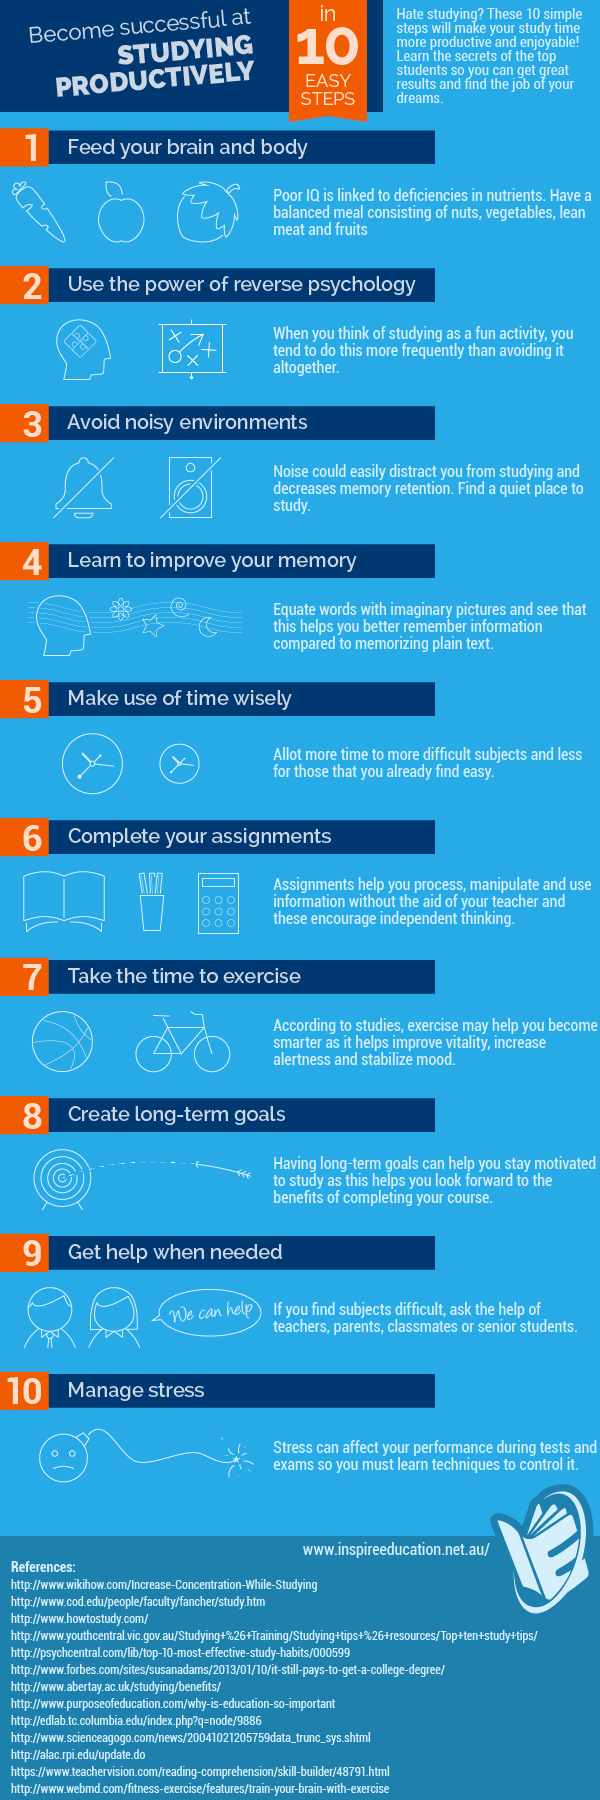 10 Steps To Studying Productively For Students